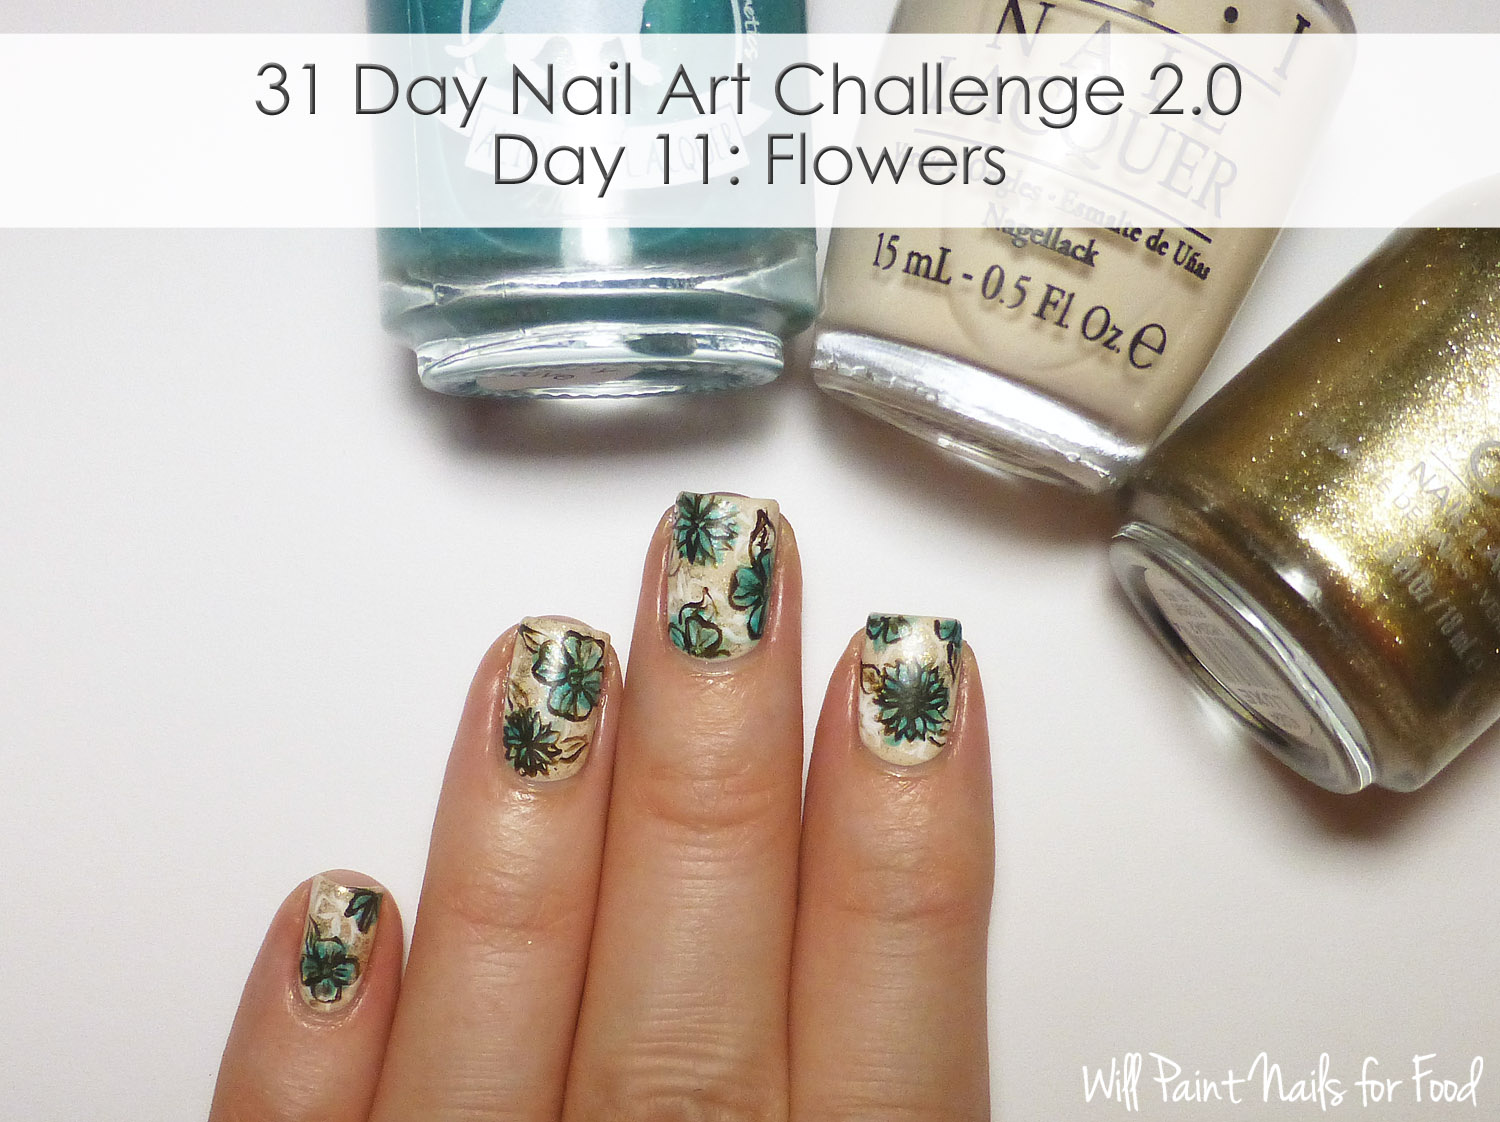 Vintage-inspired freehand floral nail art